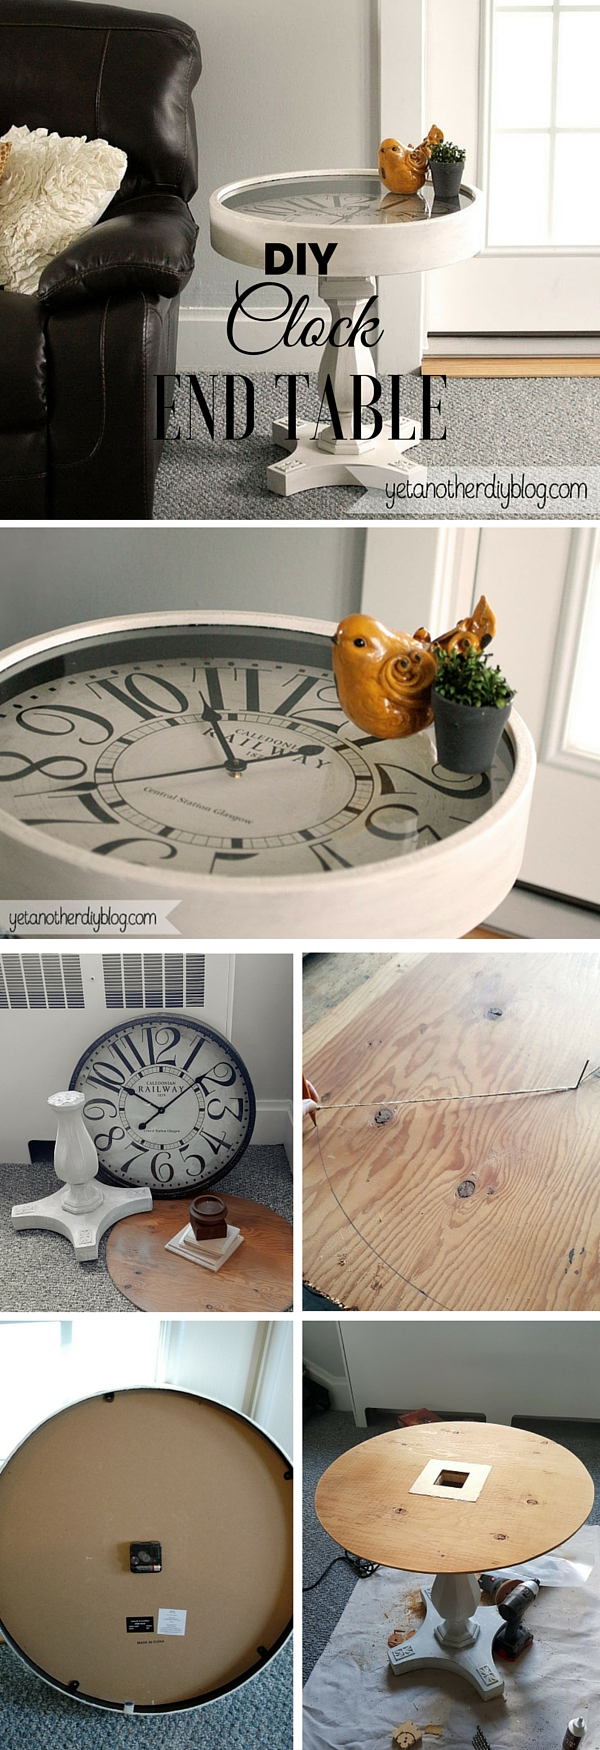 Check out the tutorial: #DIY Clock End Table